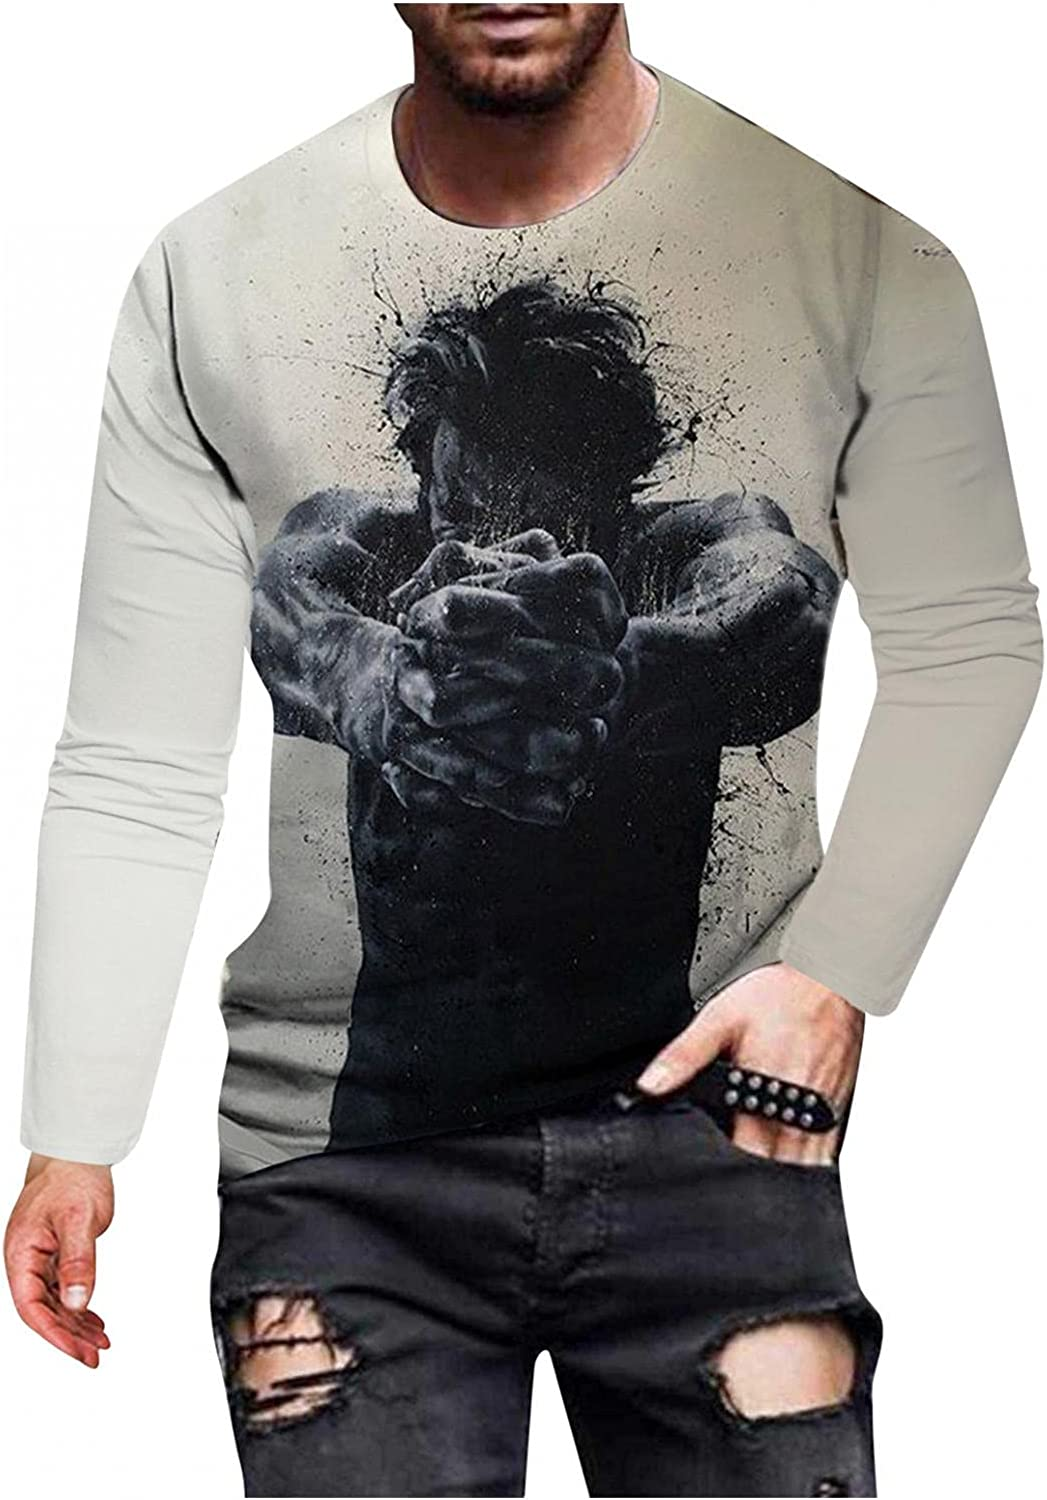 Men's T-Shirts Long Sleeve Graphic Vintage Pullover Tops Tie Dye Lightweight Tee for Outwear Athletic Workout